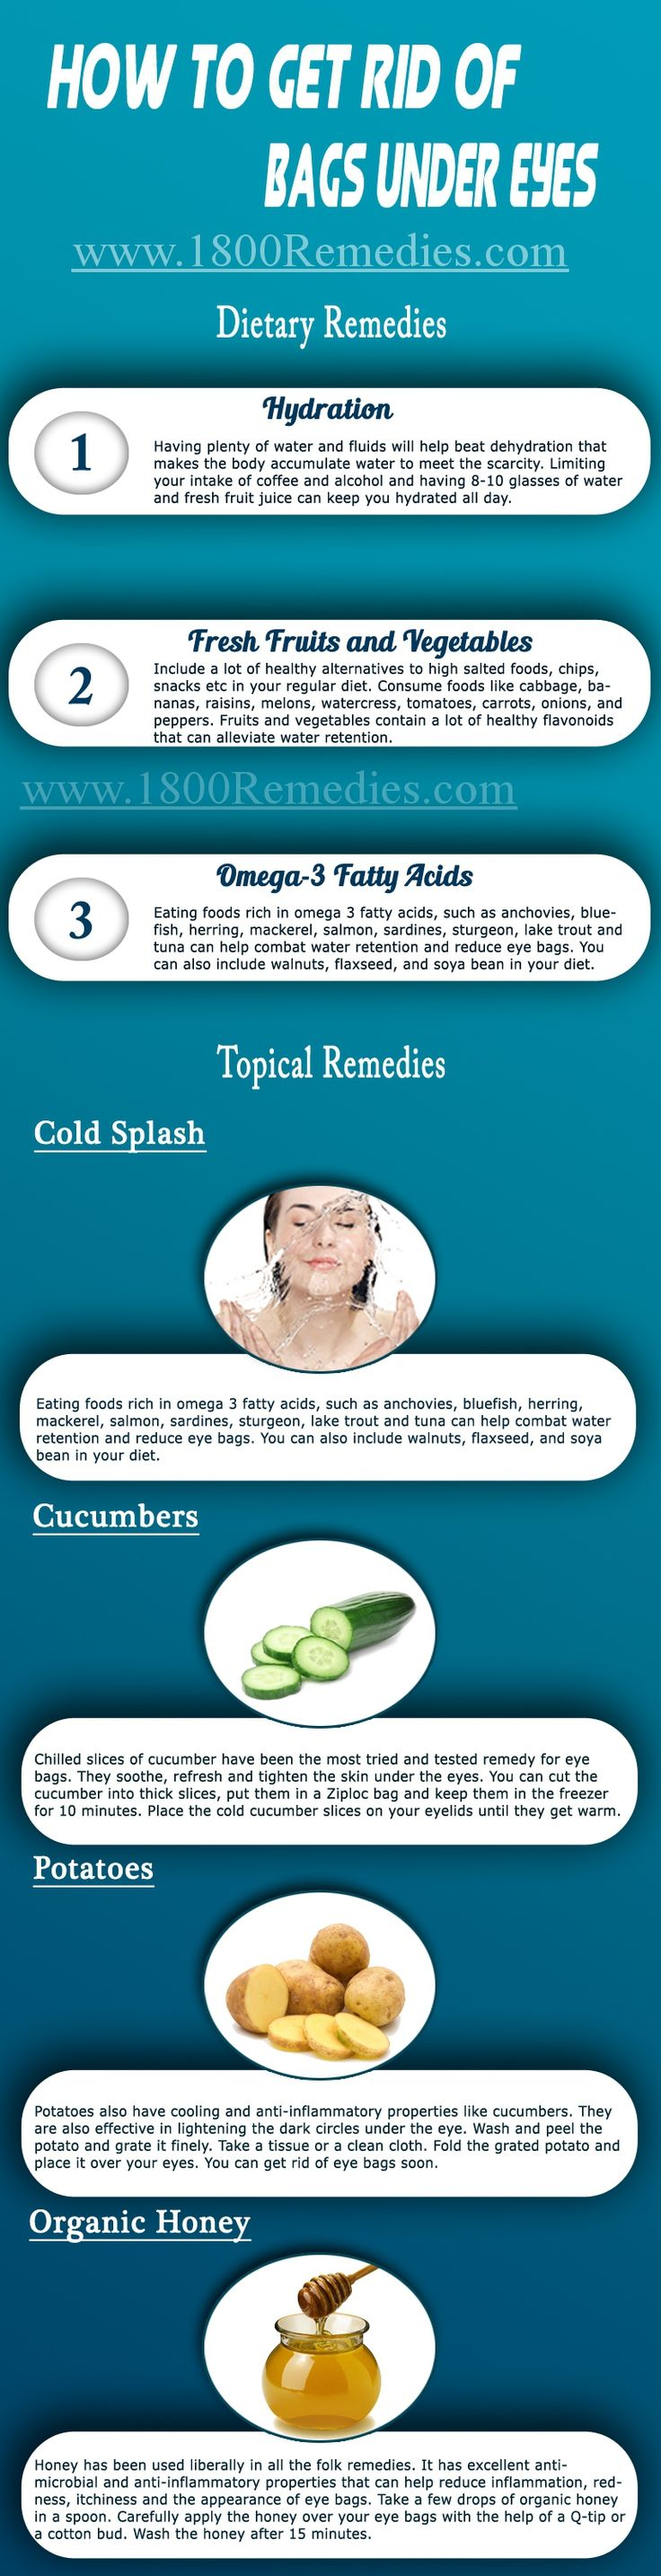 There are many remedies which you can follow to get rid of puffy bags under your eyes. Doctors also prescribe medicines for it, but these allopathic medicines come with some side effects. So, it is always better to try home remedies first, which are easy to get and come with no side effects. Let's have a look at those remedies.